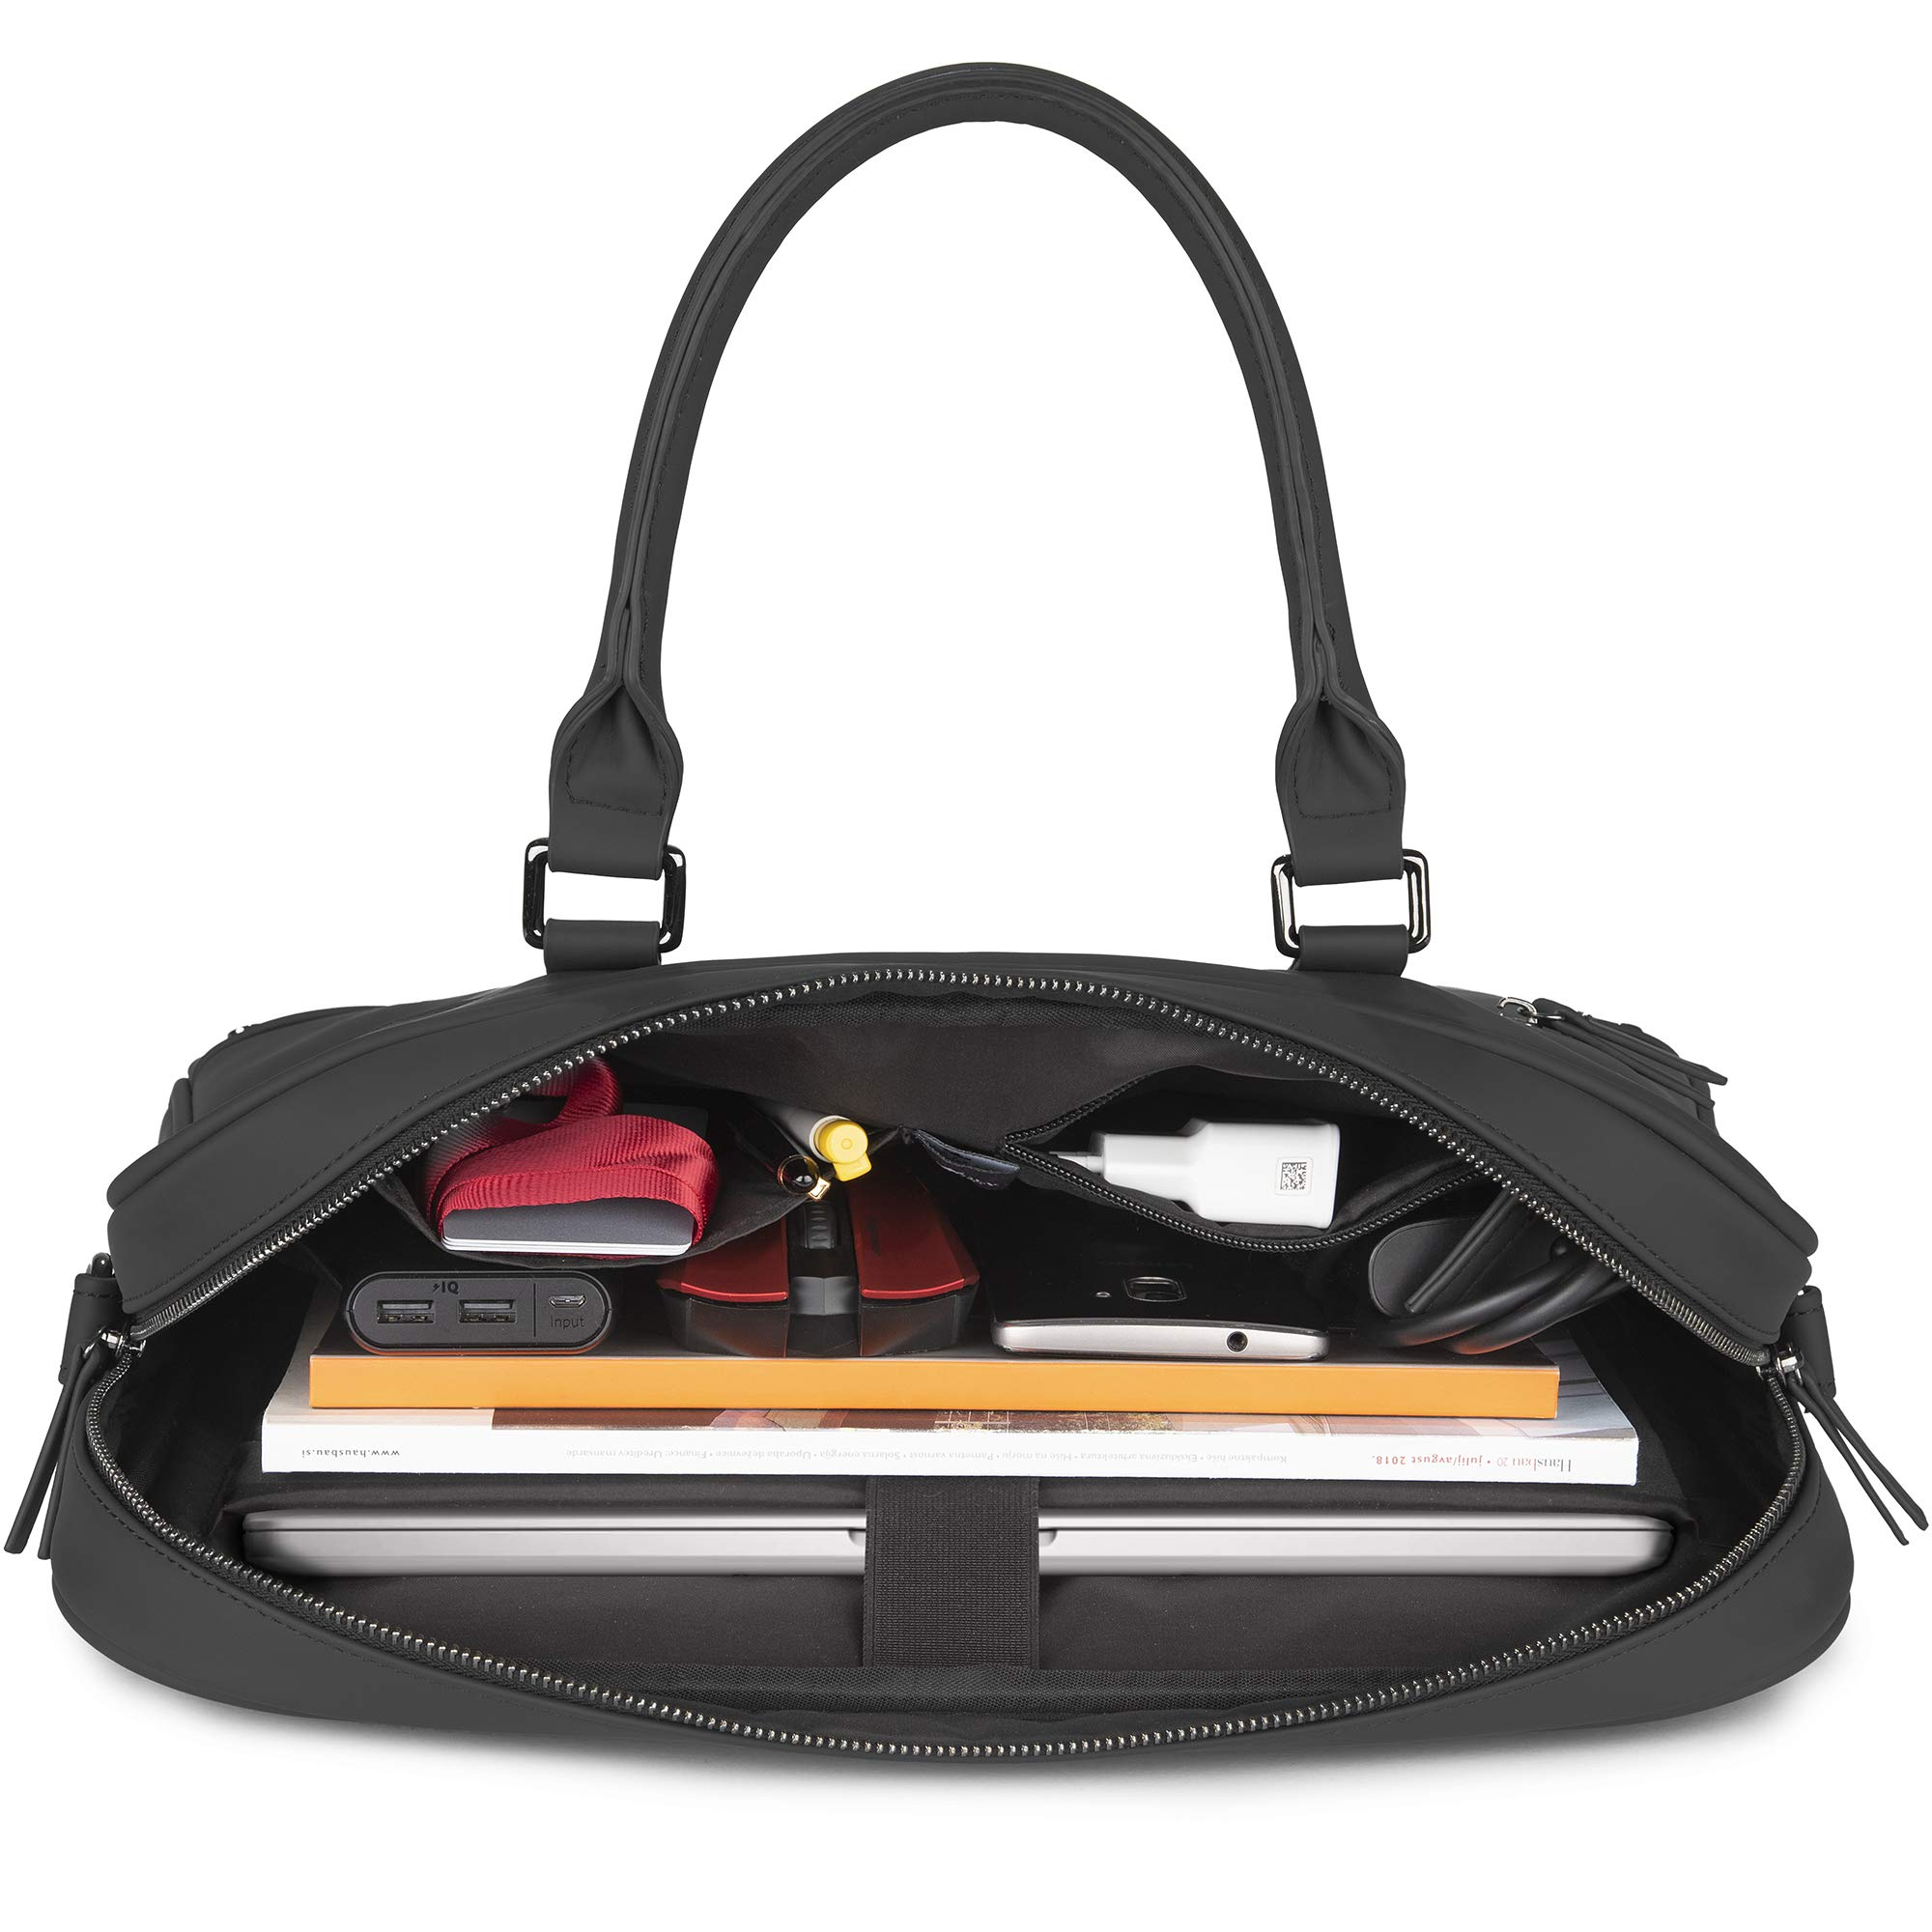 The Friendly Swede 13 inch Slim Laptop Bag for Women and Men - Shoulder Strap, Minimalist Notebook Executive Computer Case Business Briefcase, Vegan PU - VRETA by The Friendly Swede (Image #5)